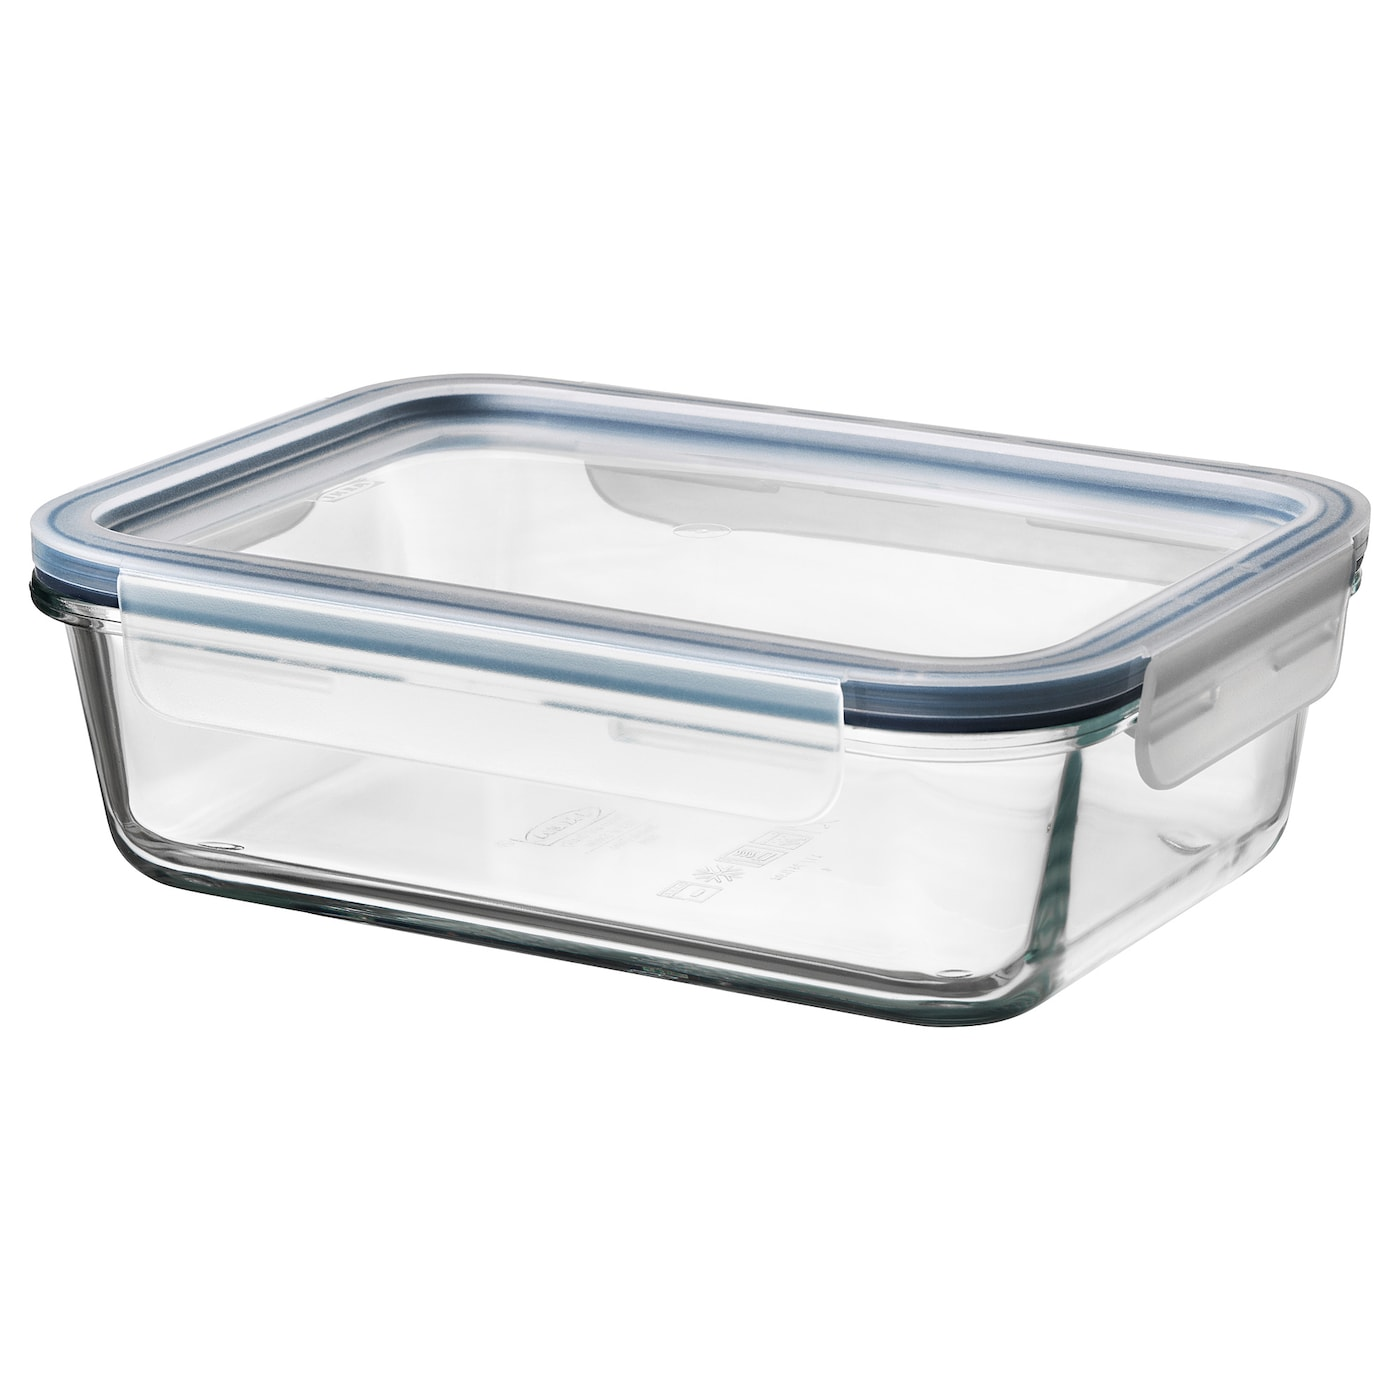 Ikea 365 Food Container With Lid 892 690 71 Ikea